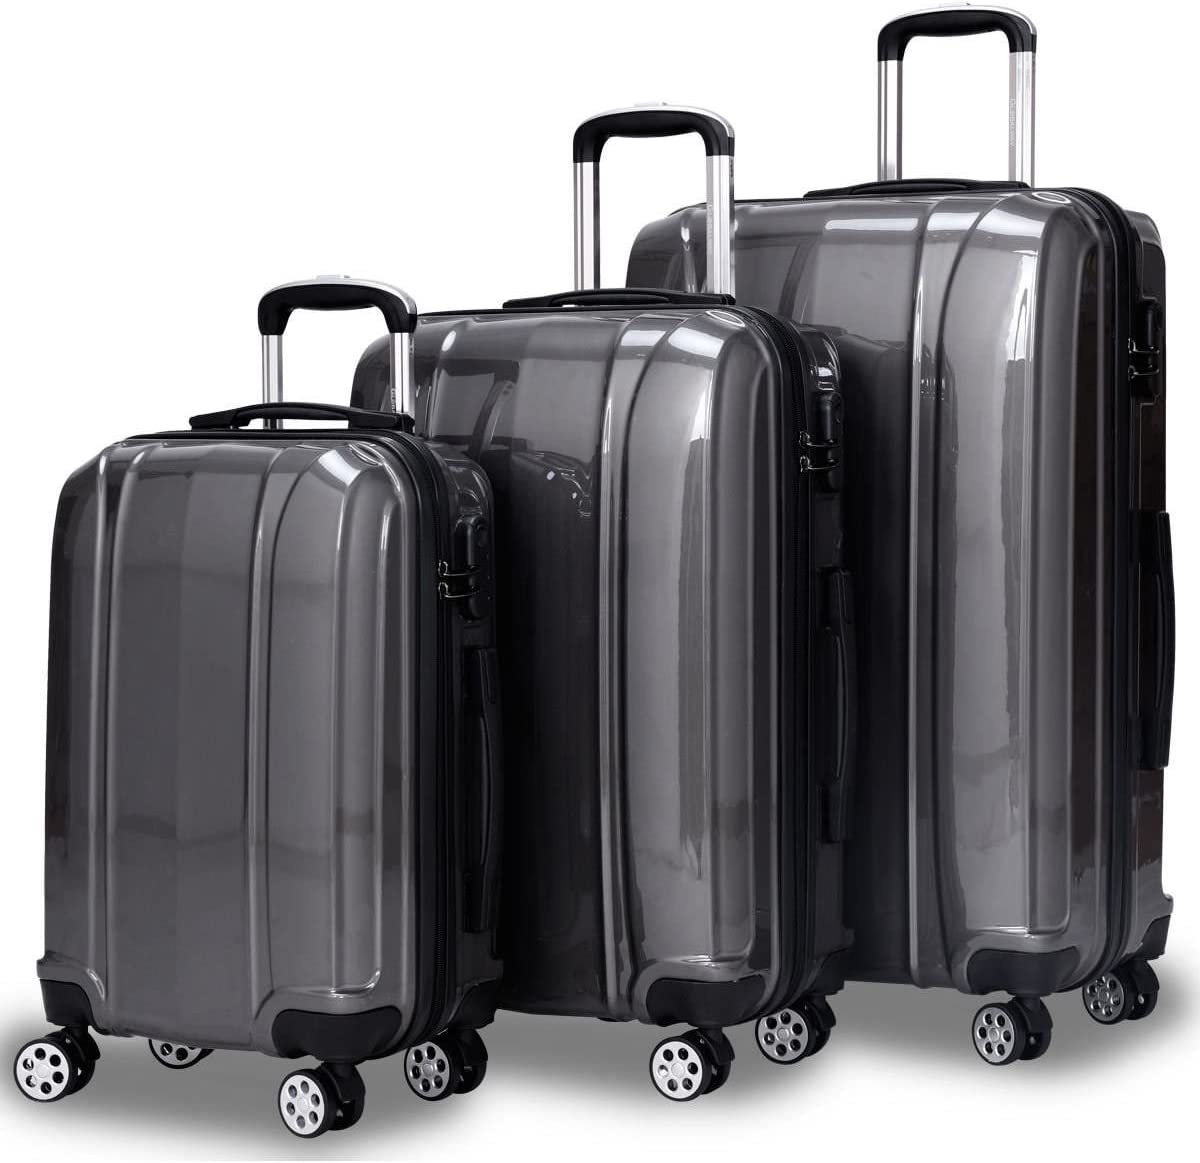 Lightweight Trolley Suitcase with Spinner Wheels Goplus Expandable Carry On Luggage 20-inch ABS Hardside Travel Bag